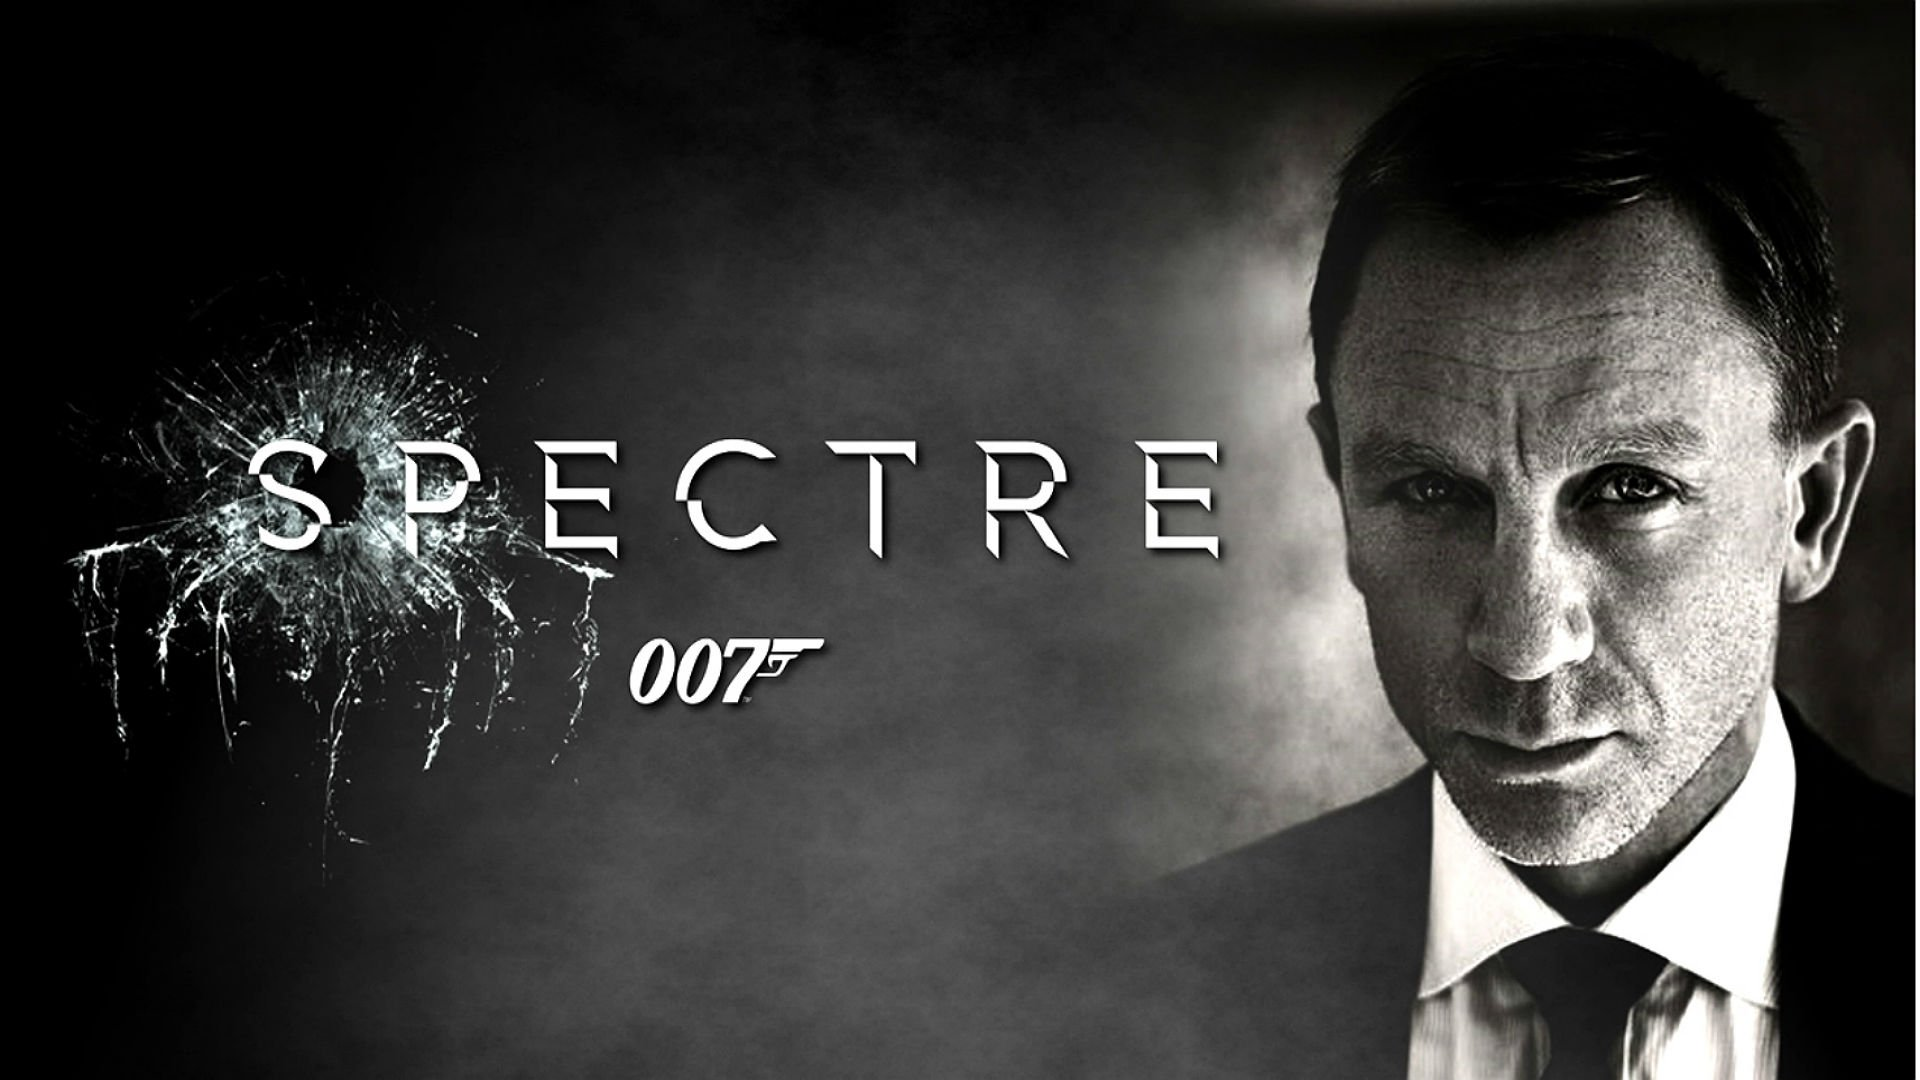 James bond spectre wallpapers pictures images - James bond images hd ...